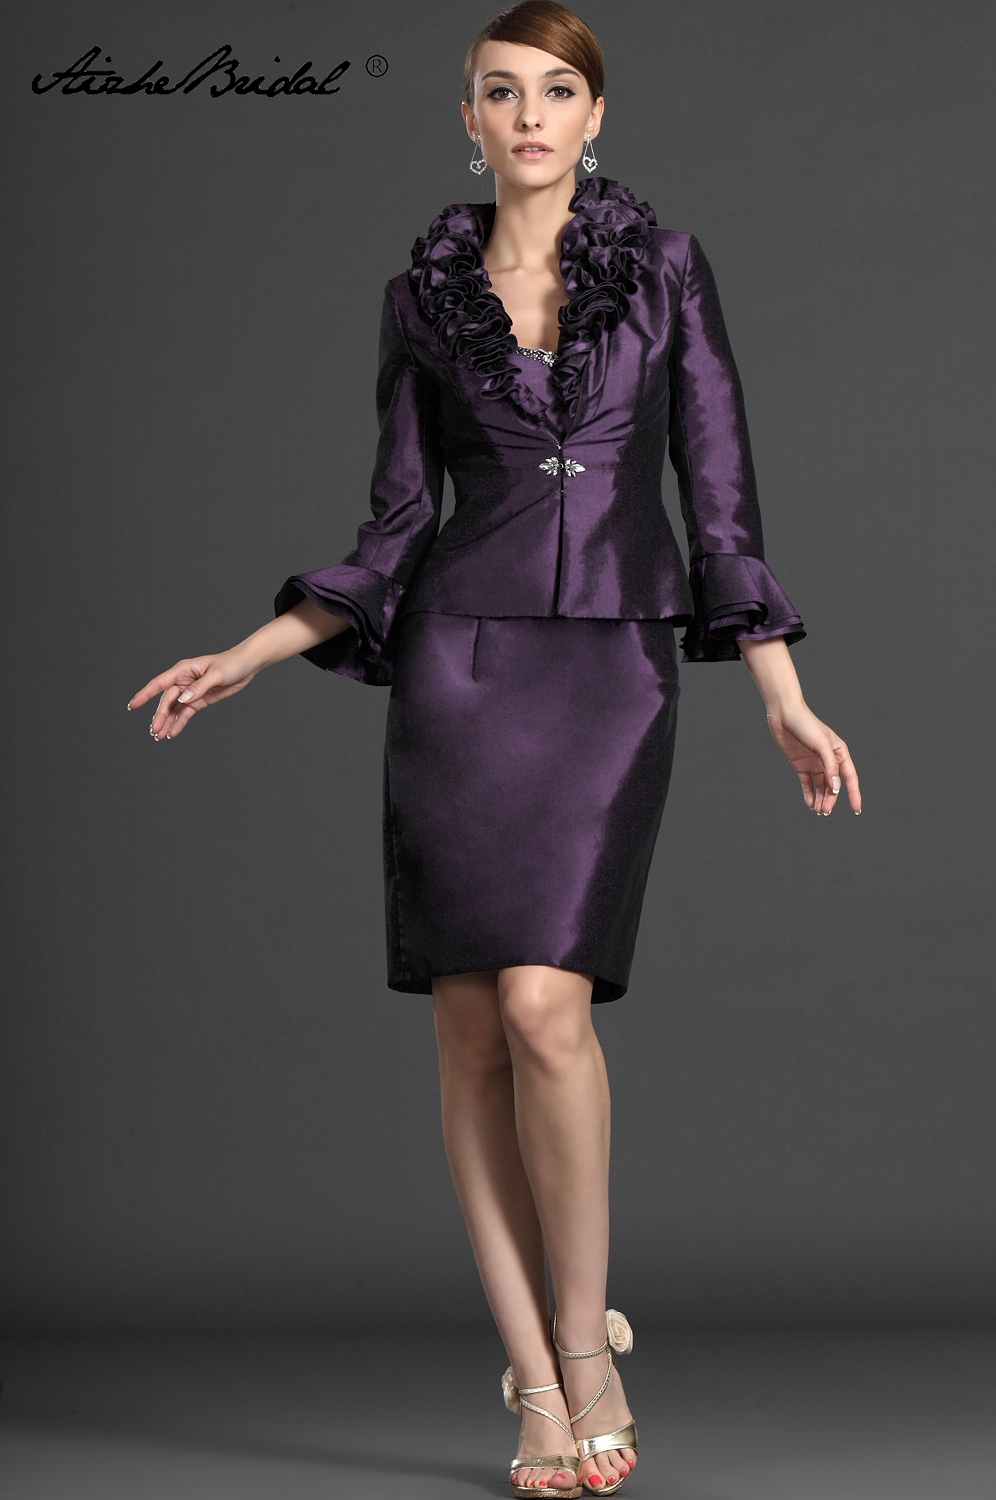 Formal Women's Dress Short Mother Of The Groom Dresses Elegant Grape Taffeta Mother Of The Bride Dress With Jacket